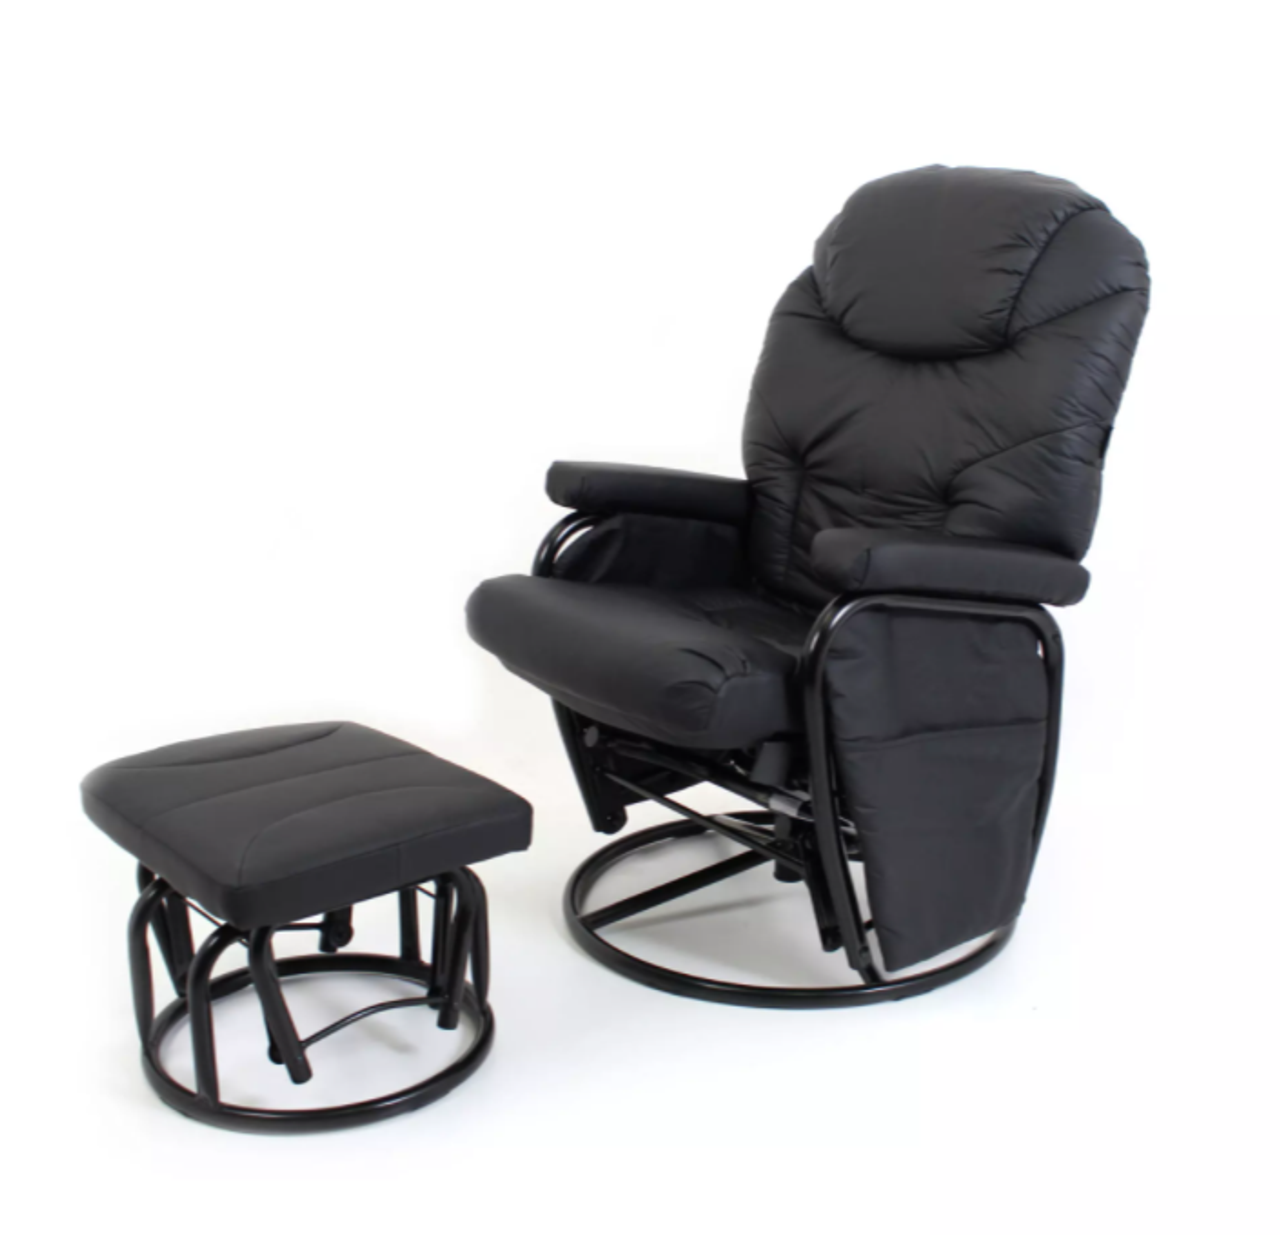 Valco Seville Glider Set Black at Baby Barn Discounts Primarily designed as a chair to assist nursing mothers, the gentle gliding motion and comfortable padding will help create the most relaxing environment.